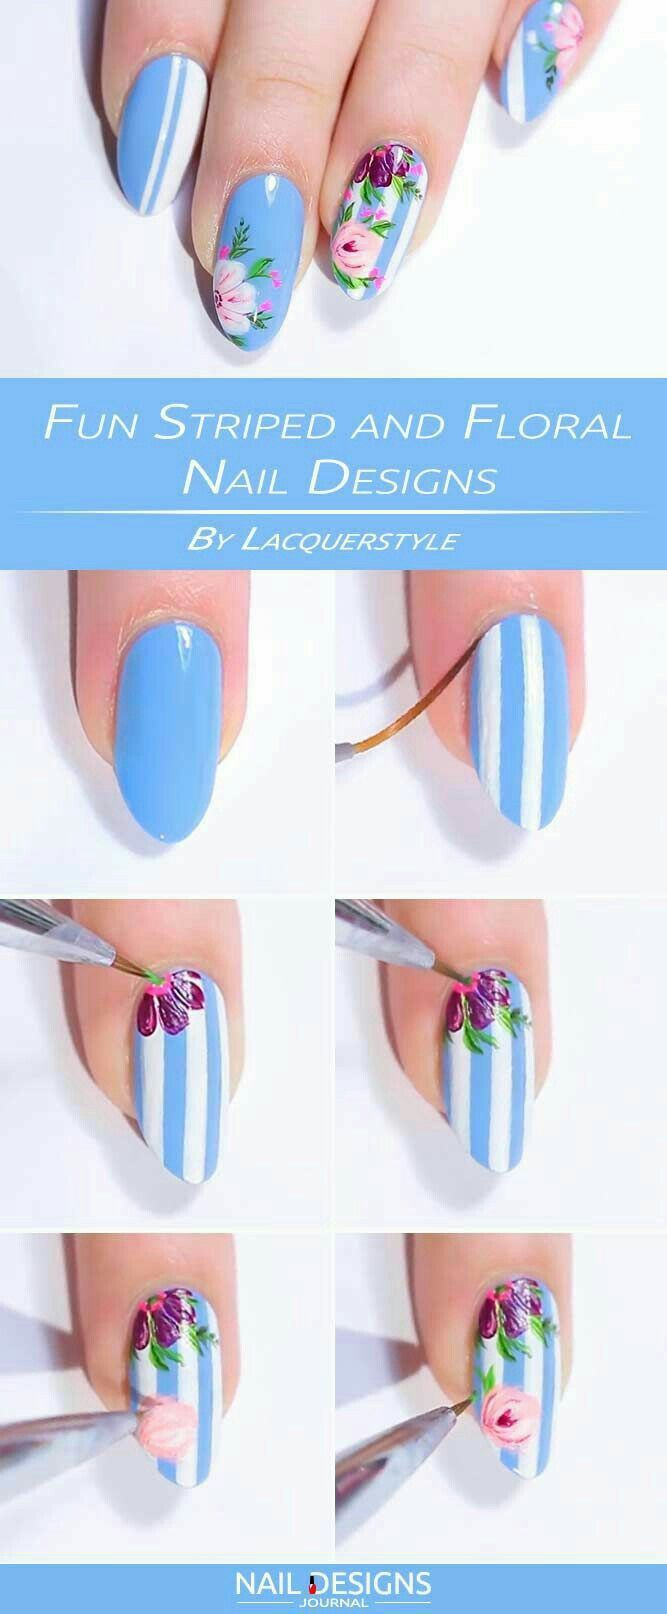 101 best Makeup & Nails art images on Pinterest | Make up, Make up ...